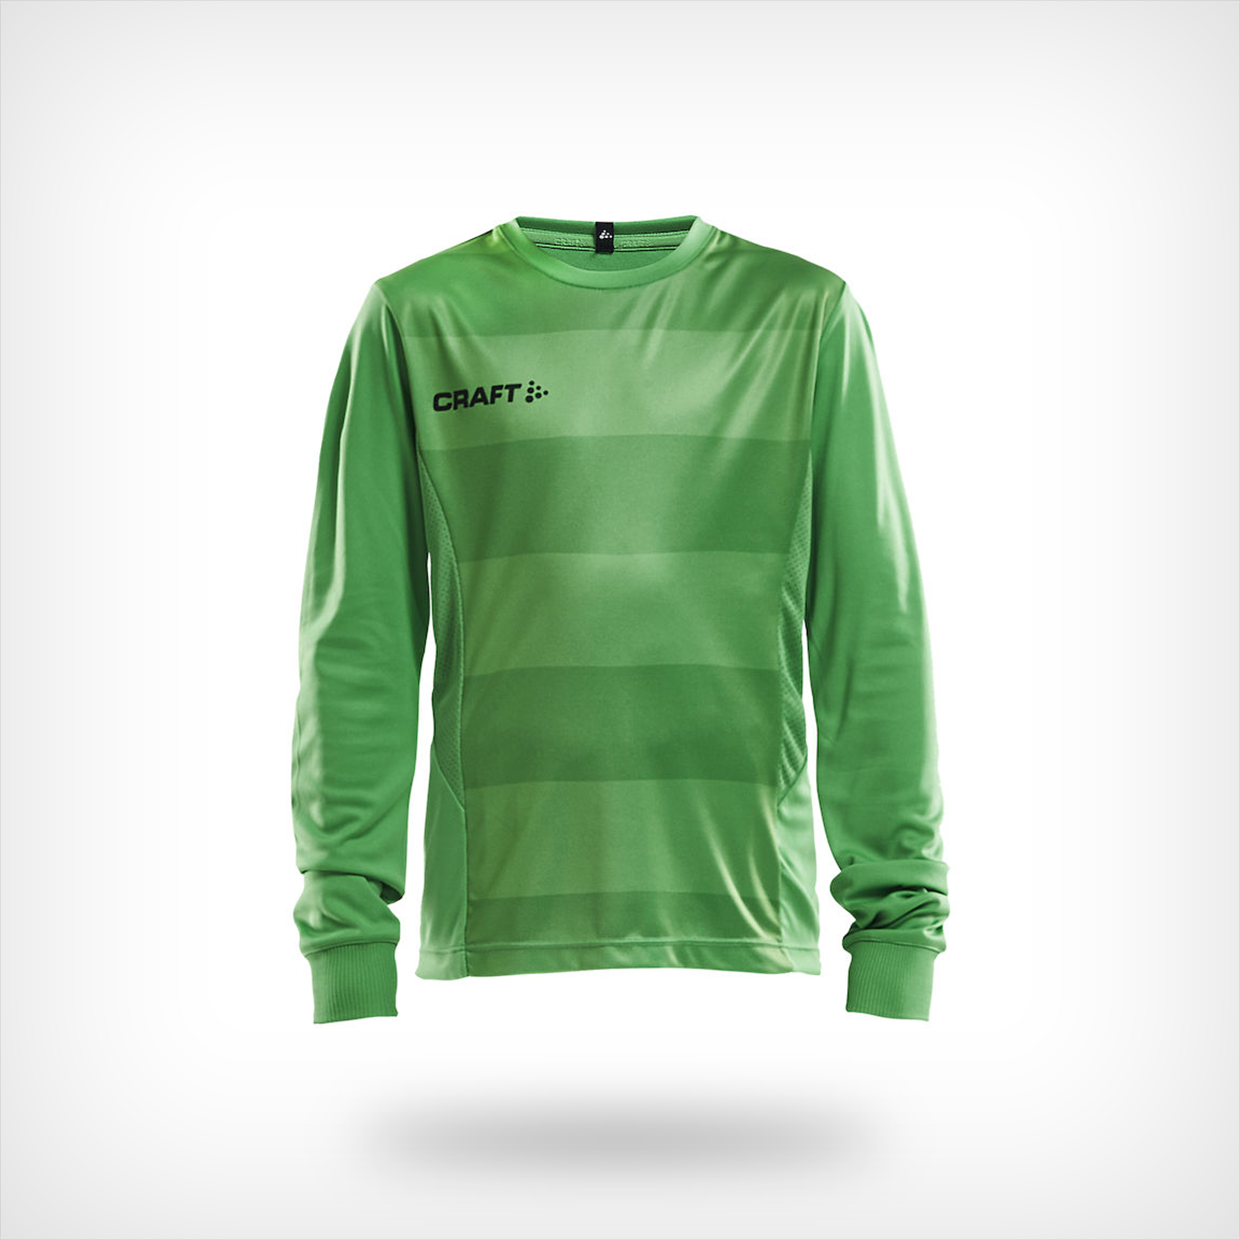 Craft Progress Goalkeeper kids shirt, 1905593